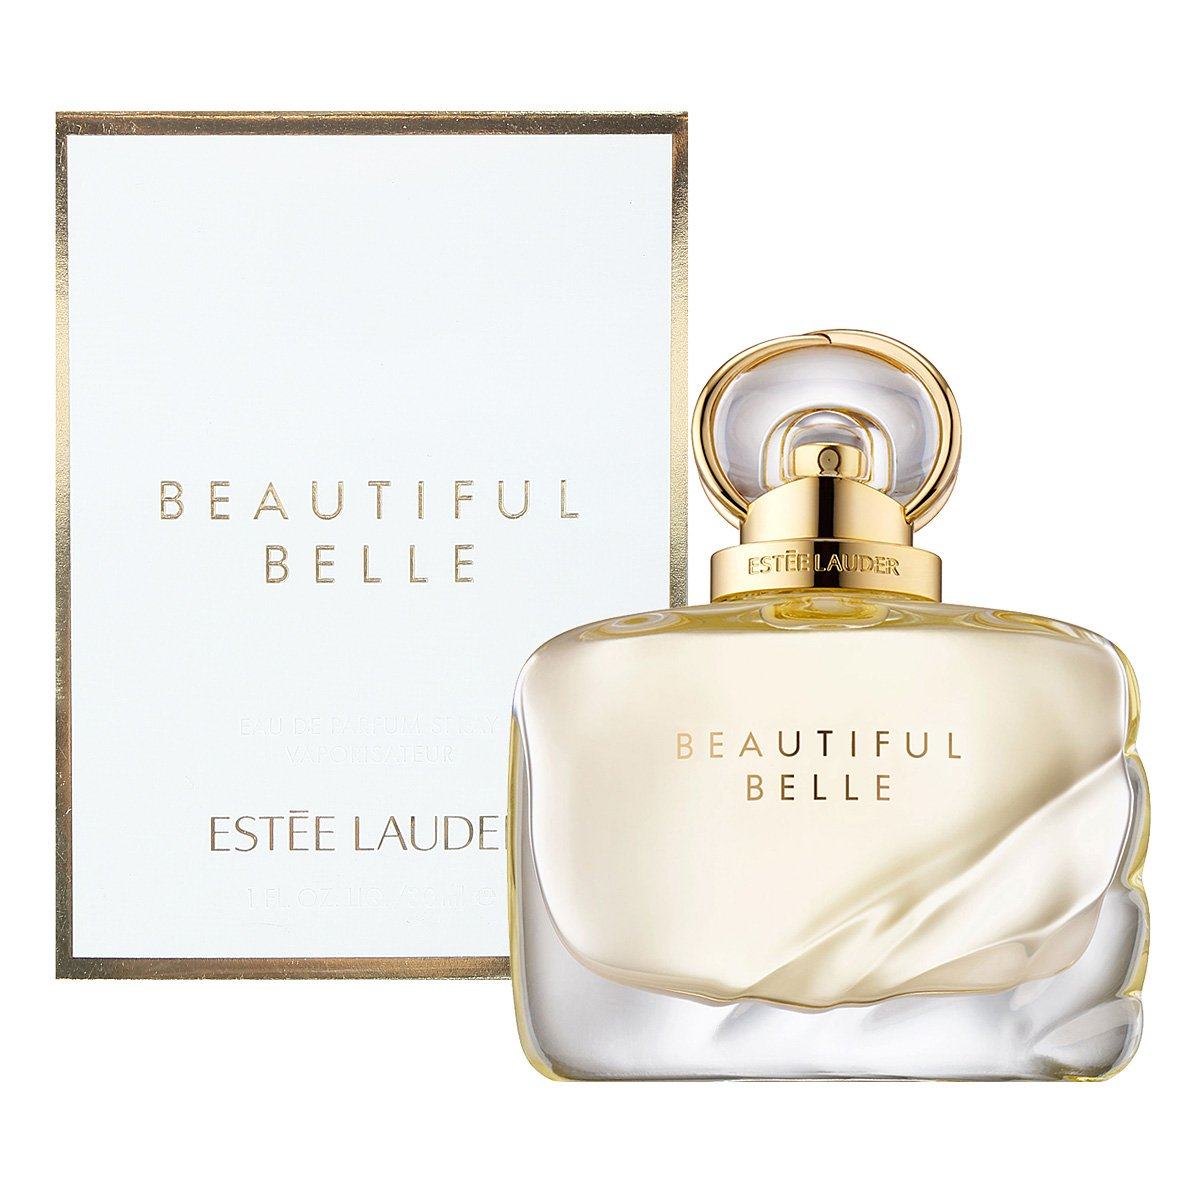 Estee Lauder - Beautiful Belle, 30 мл, 1139 грн